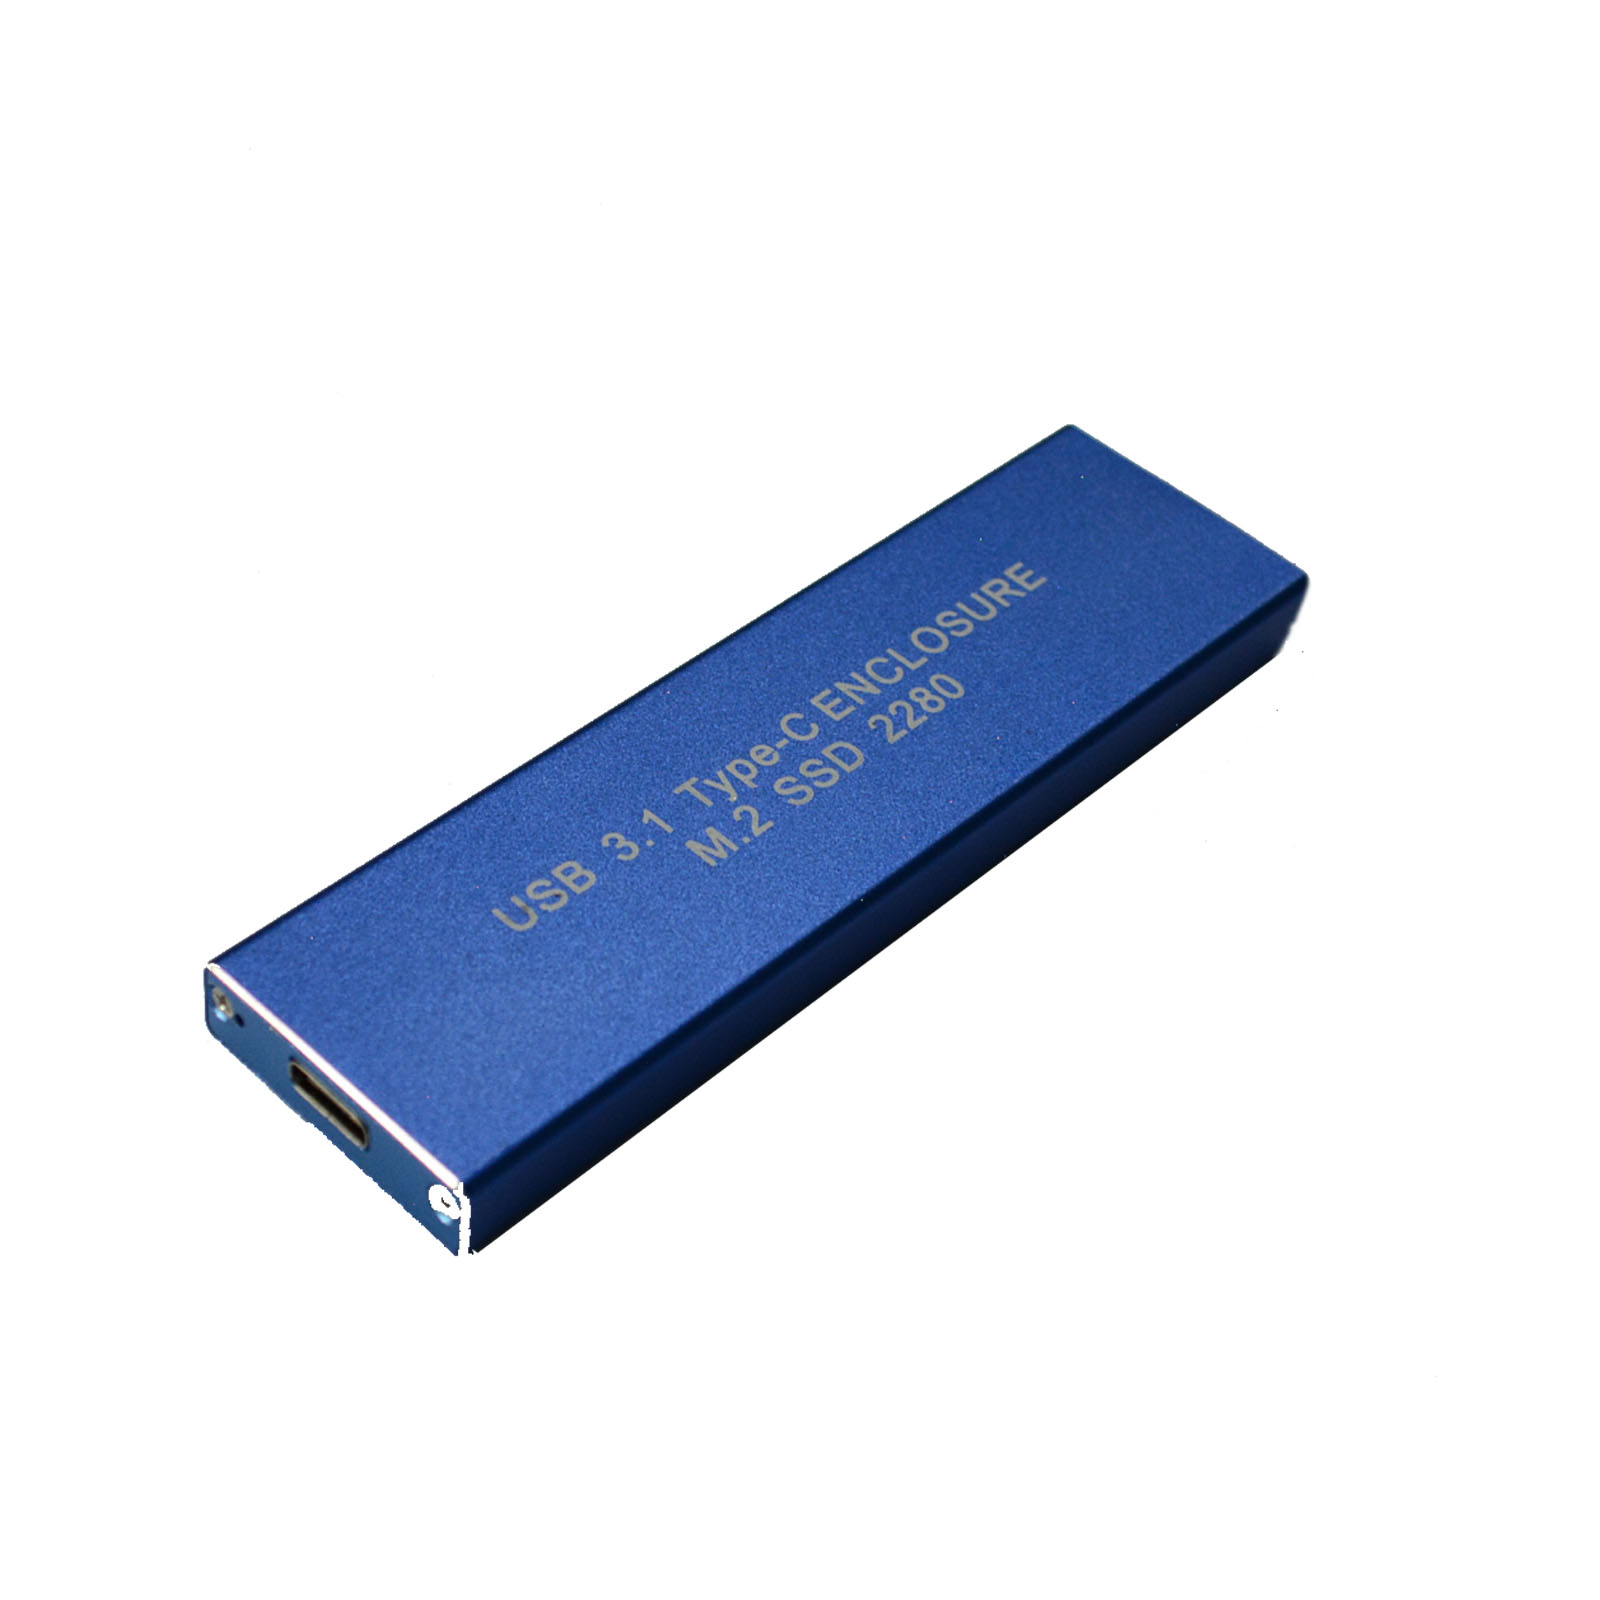 SSD USB Enclosure